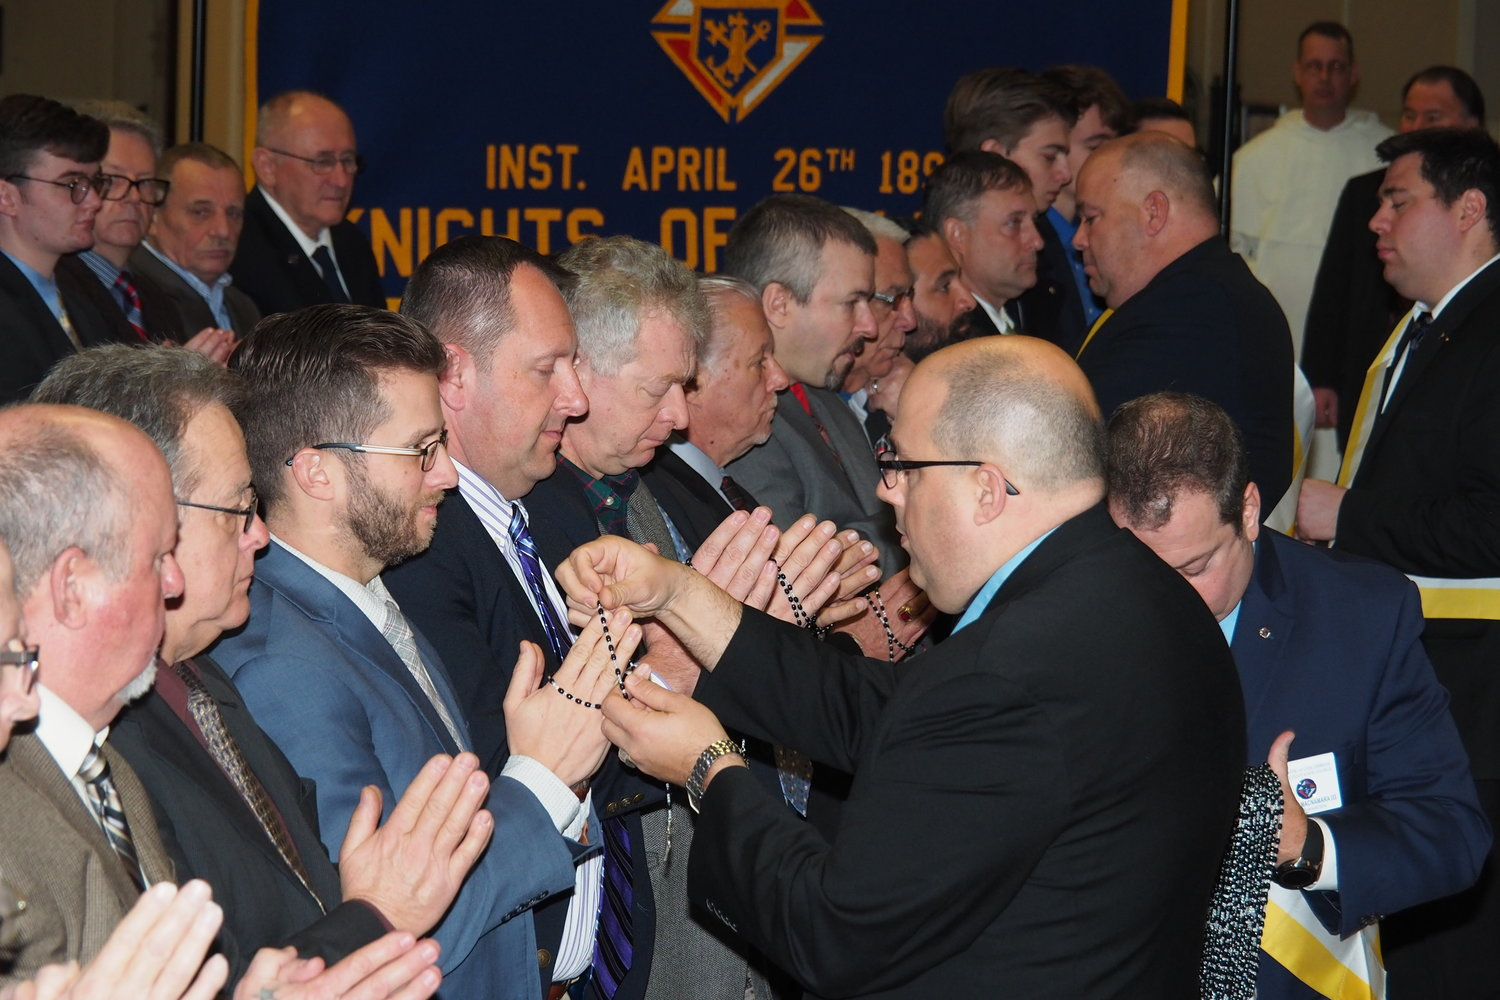 Members of the Knights of Columbus receive rosaries Jan. 1 as part of the organization's new ceremony that is designed to condense the initiation of the Knights' first three degrees into one. In addition, the ceremony is now conducted in public instead of in a secret, members-only occasion.